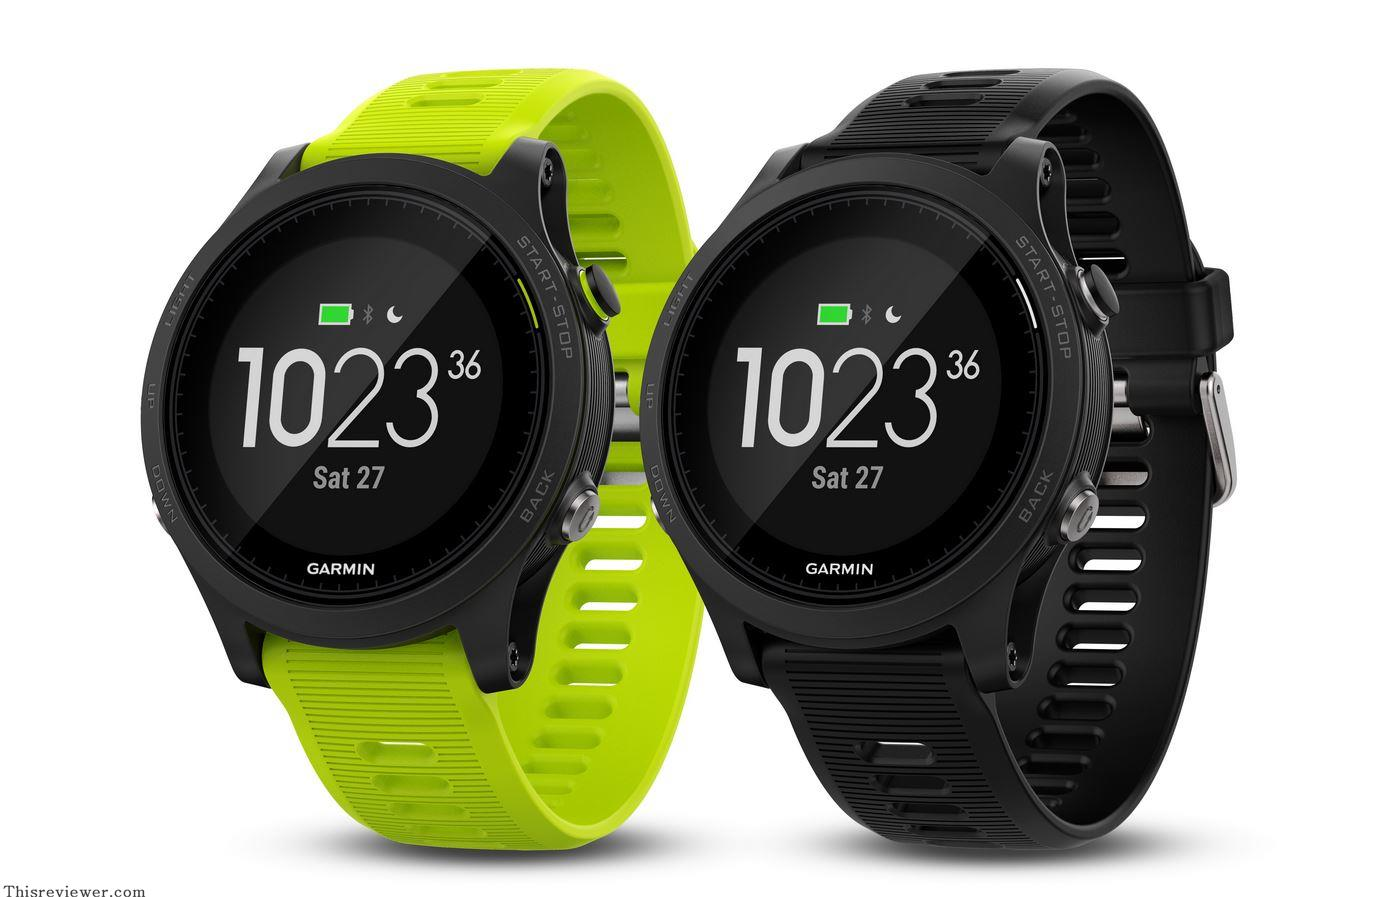 garmin forerunner 935 hands-on review